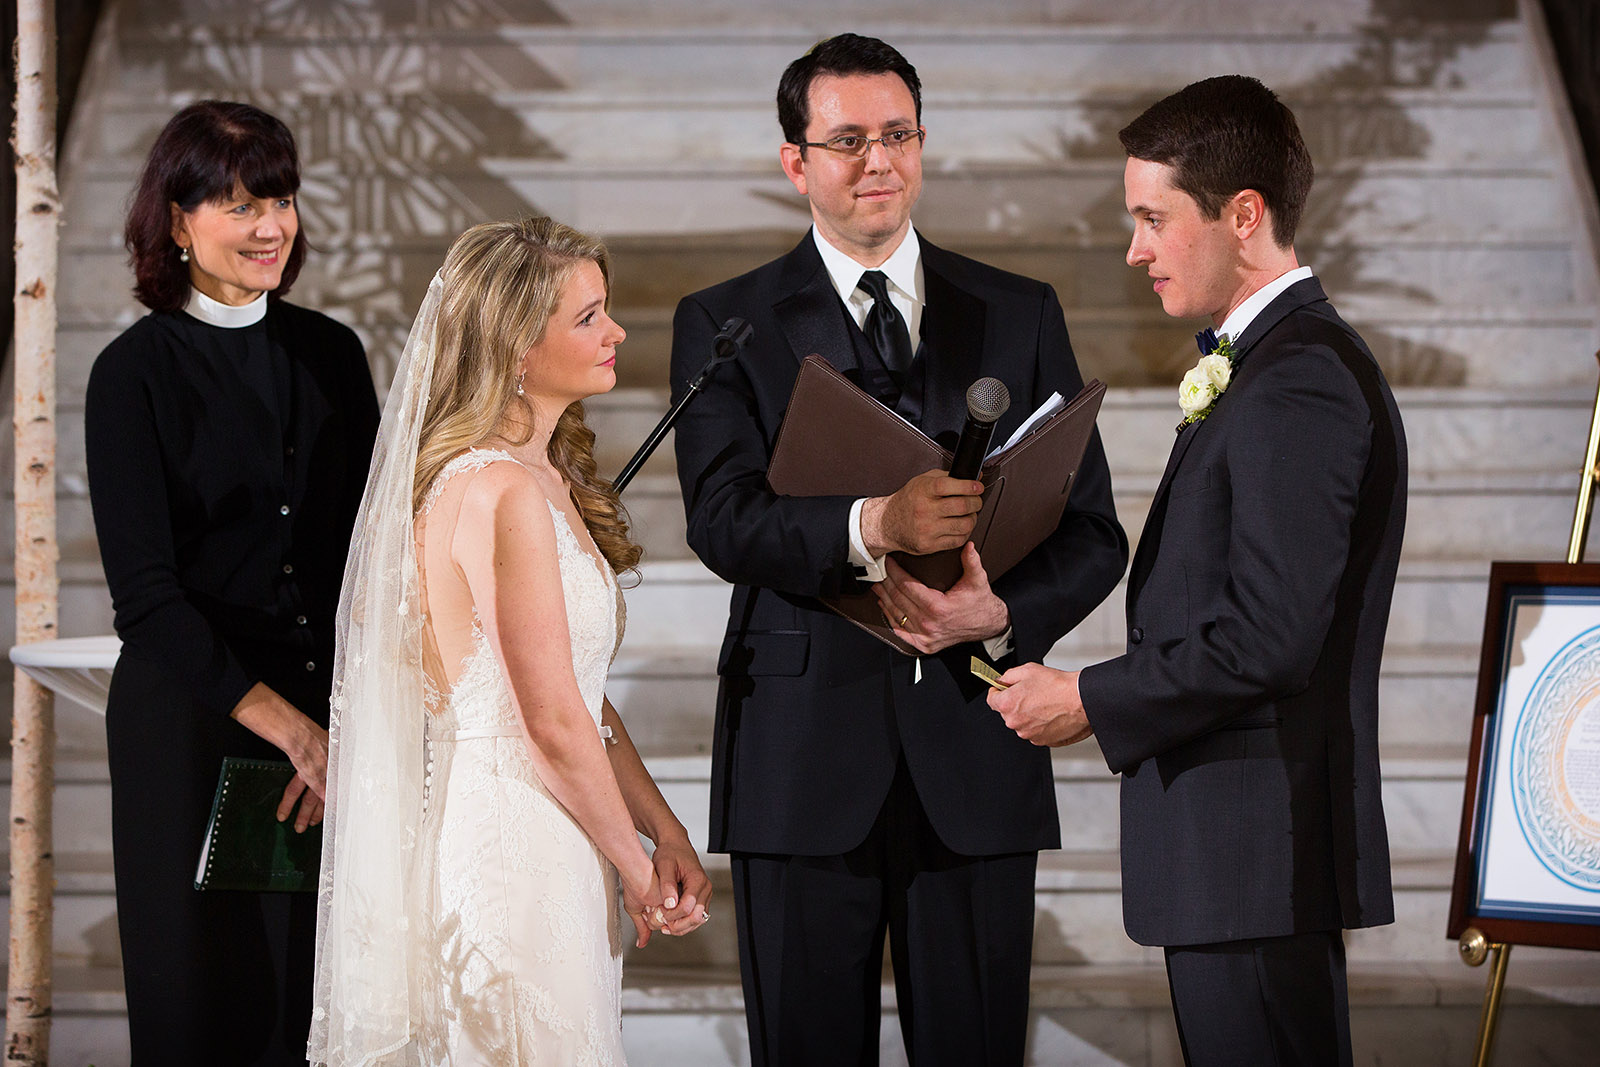 Jewish Wedding Ceremony Vows Chicago Rookery